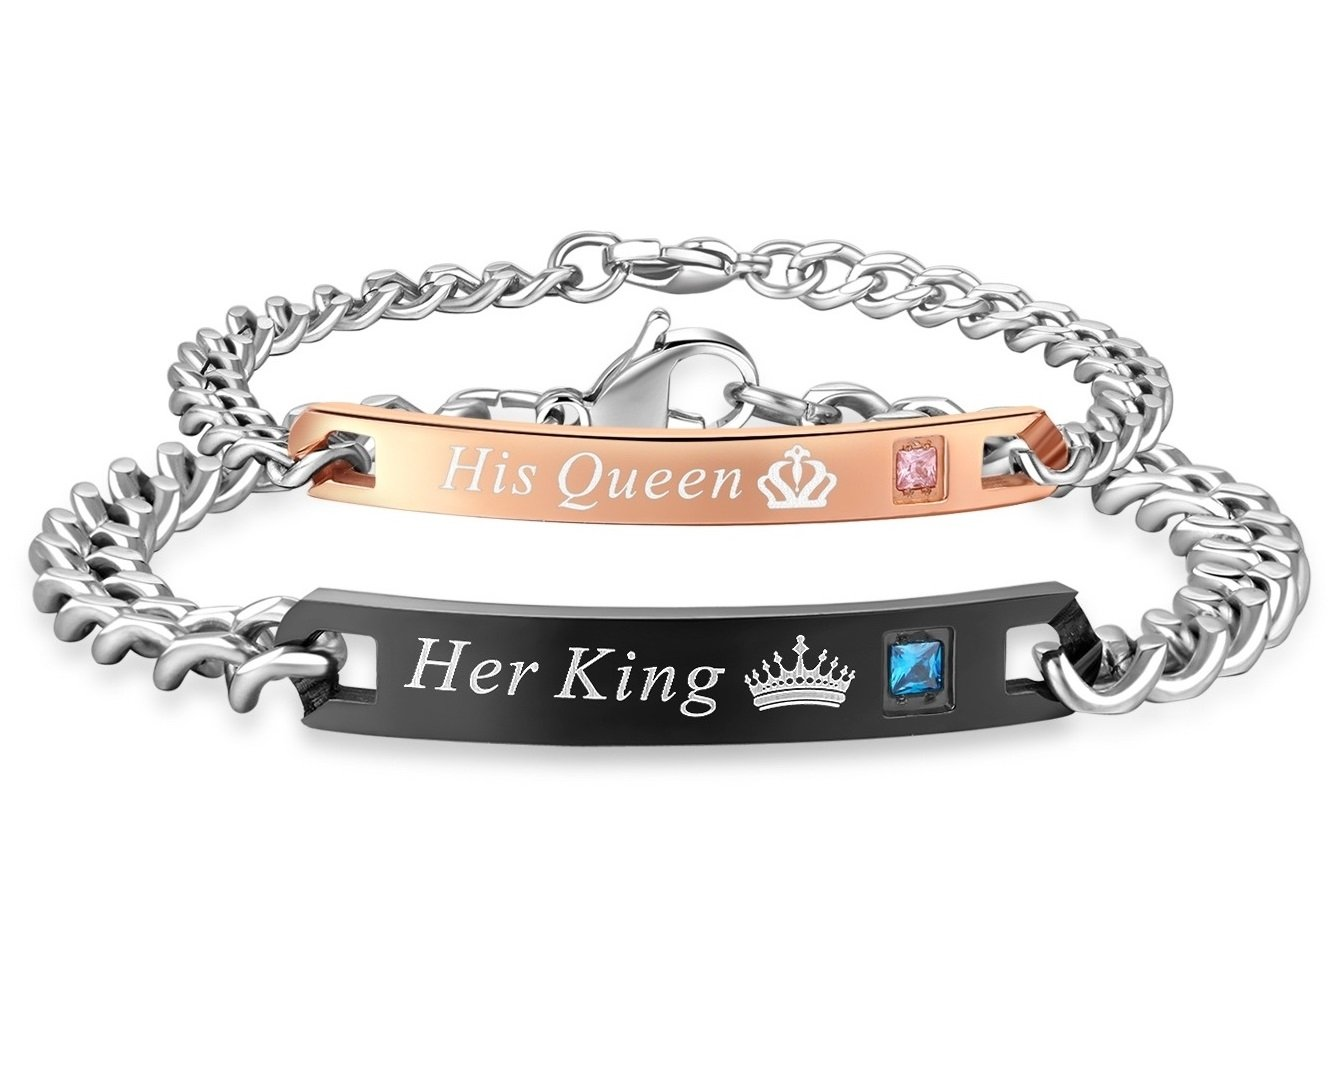 SunnyHouse Jewelry His & Hers Matching Set Titanium Stainless Steel His Queen Her King Couple Bracelet in a Gift Box (A PAIR)